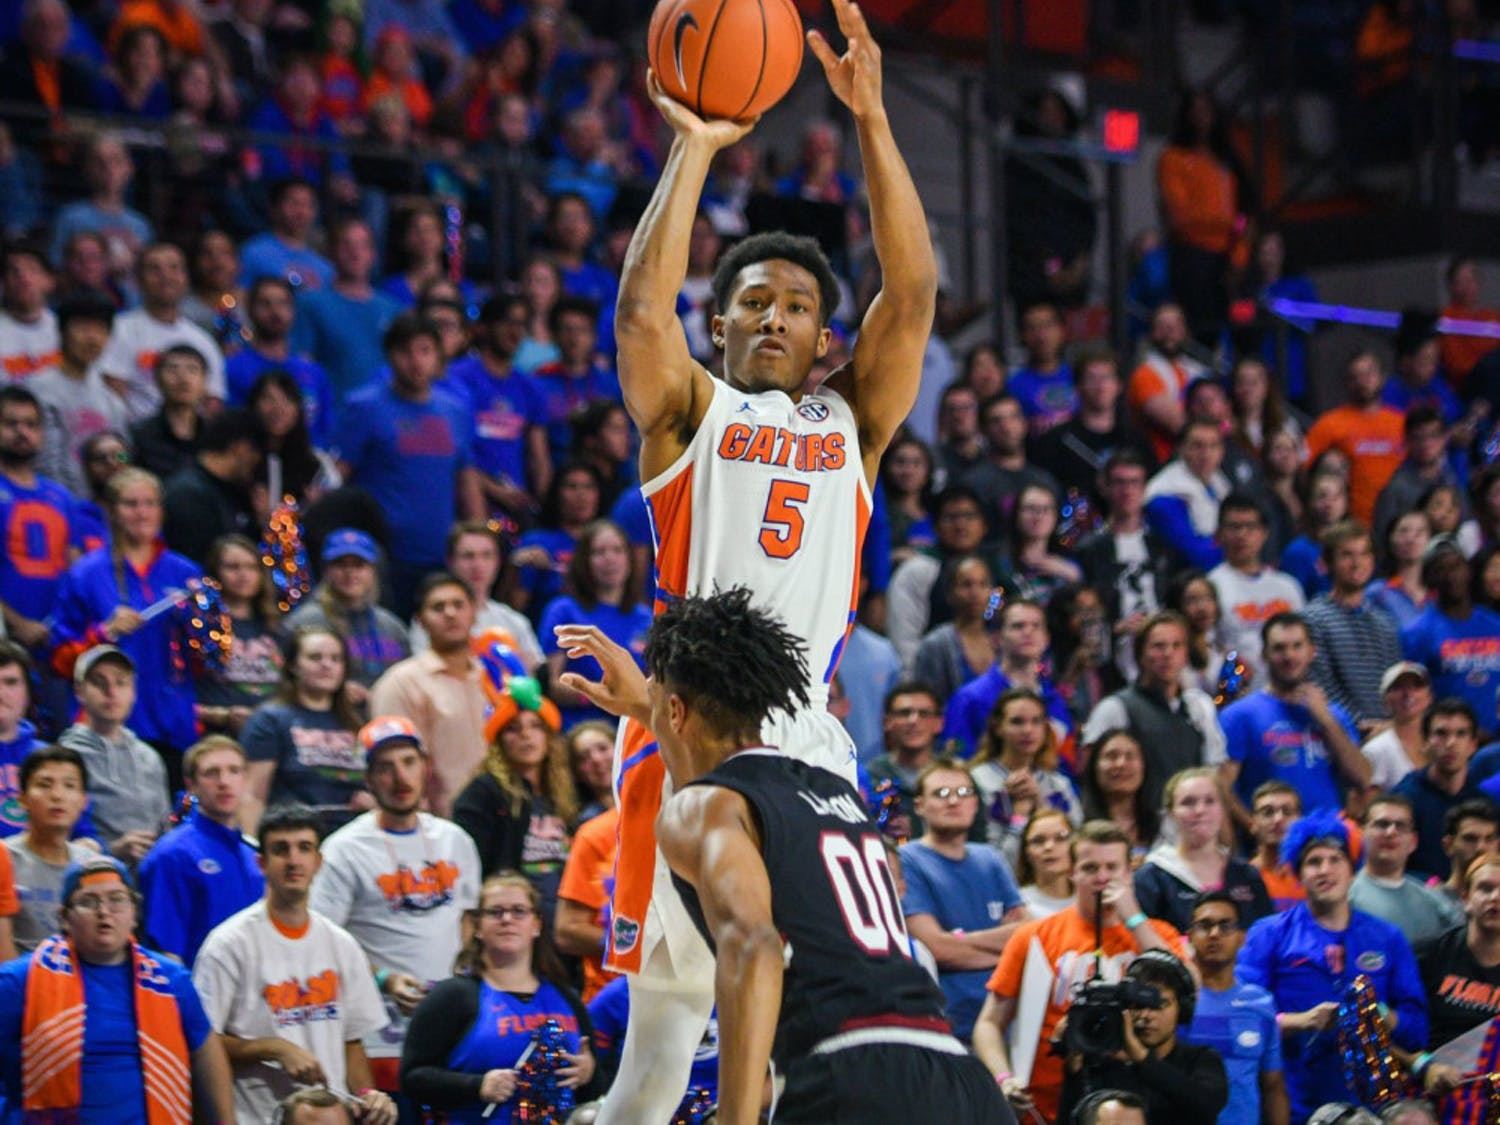 Senior guard KeVaughn Allen led the Gators in scoring with 13 points in their 62-52 win over Georgia on Saturday.